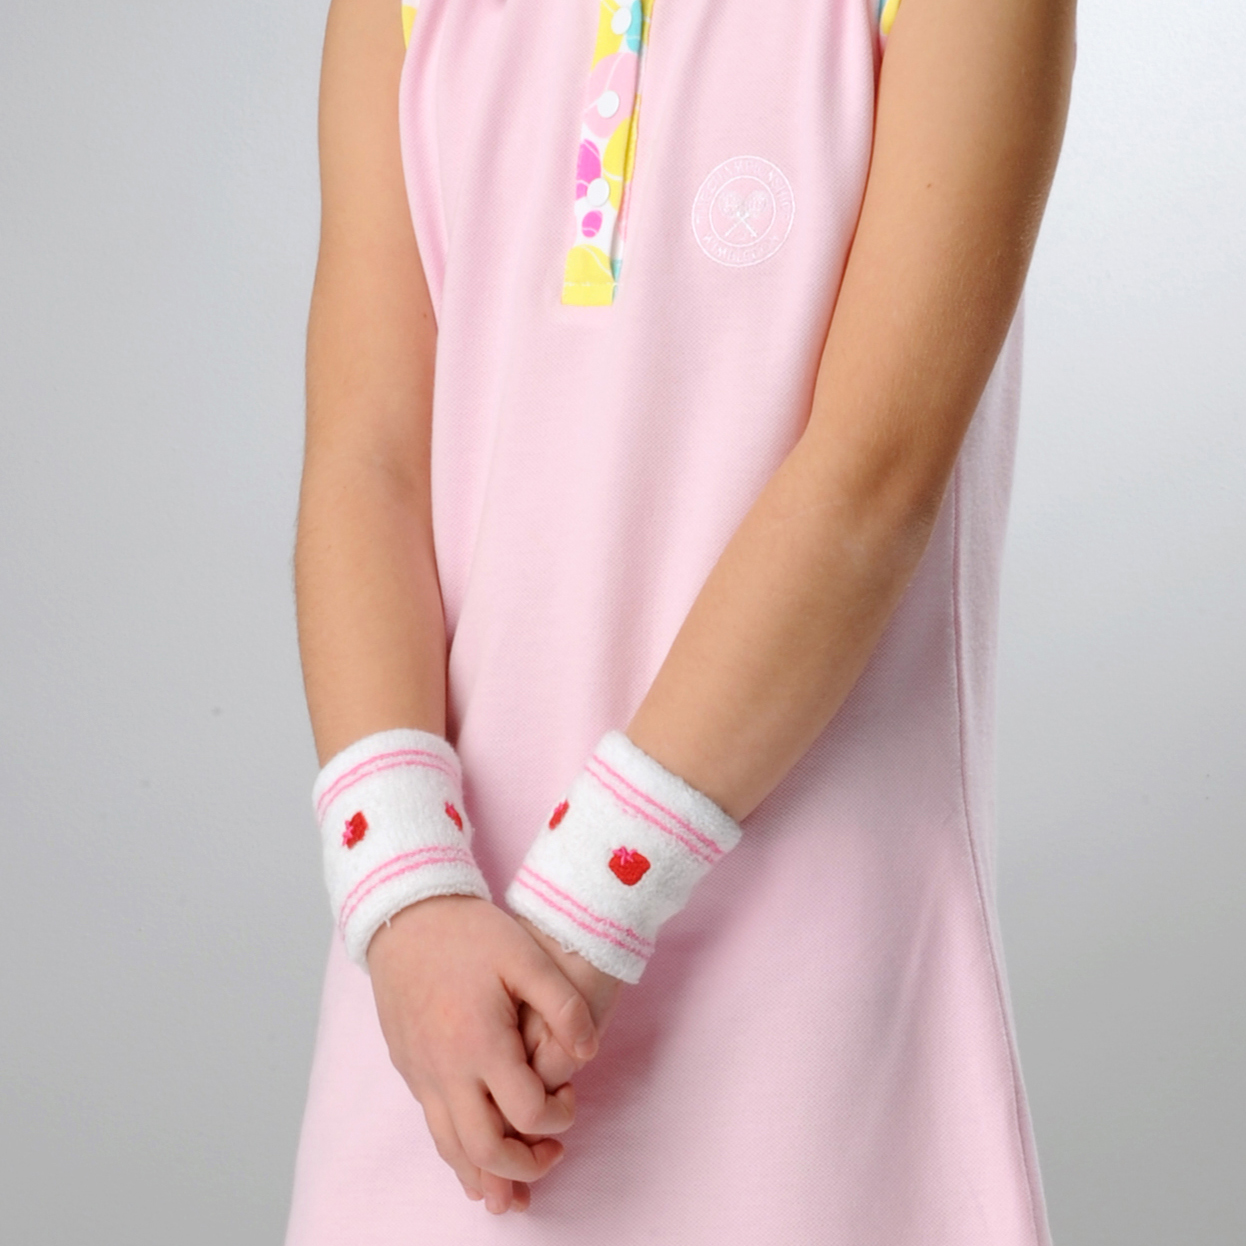 Wimbledon Strawberry Wristband - White/Pink - Girls